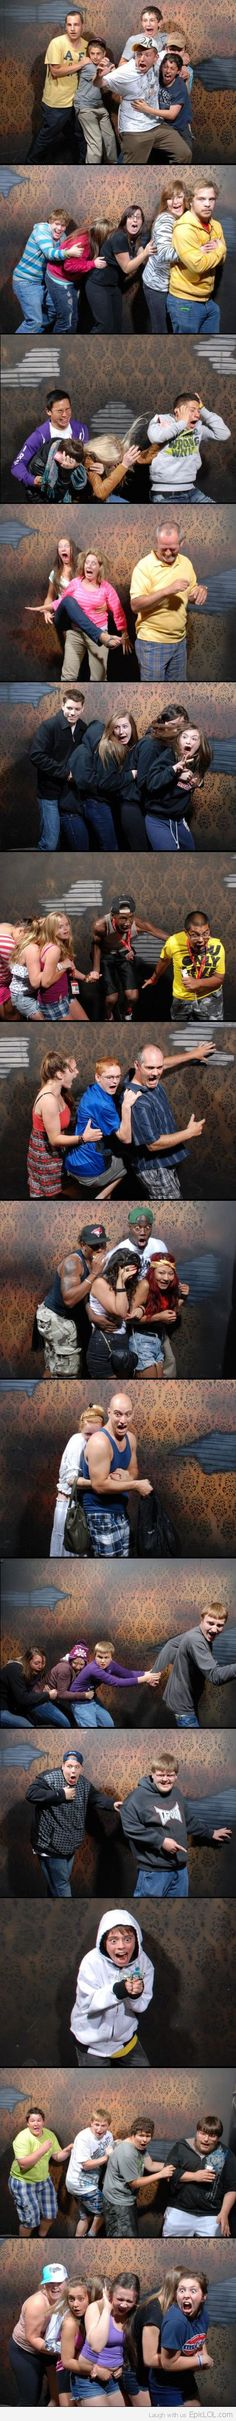 OMG HILARIOUS. Whoever decided to put a camera put in a haunted house is a genius! BAHAHAHAH